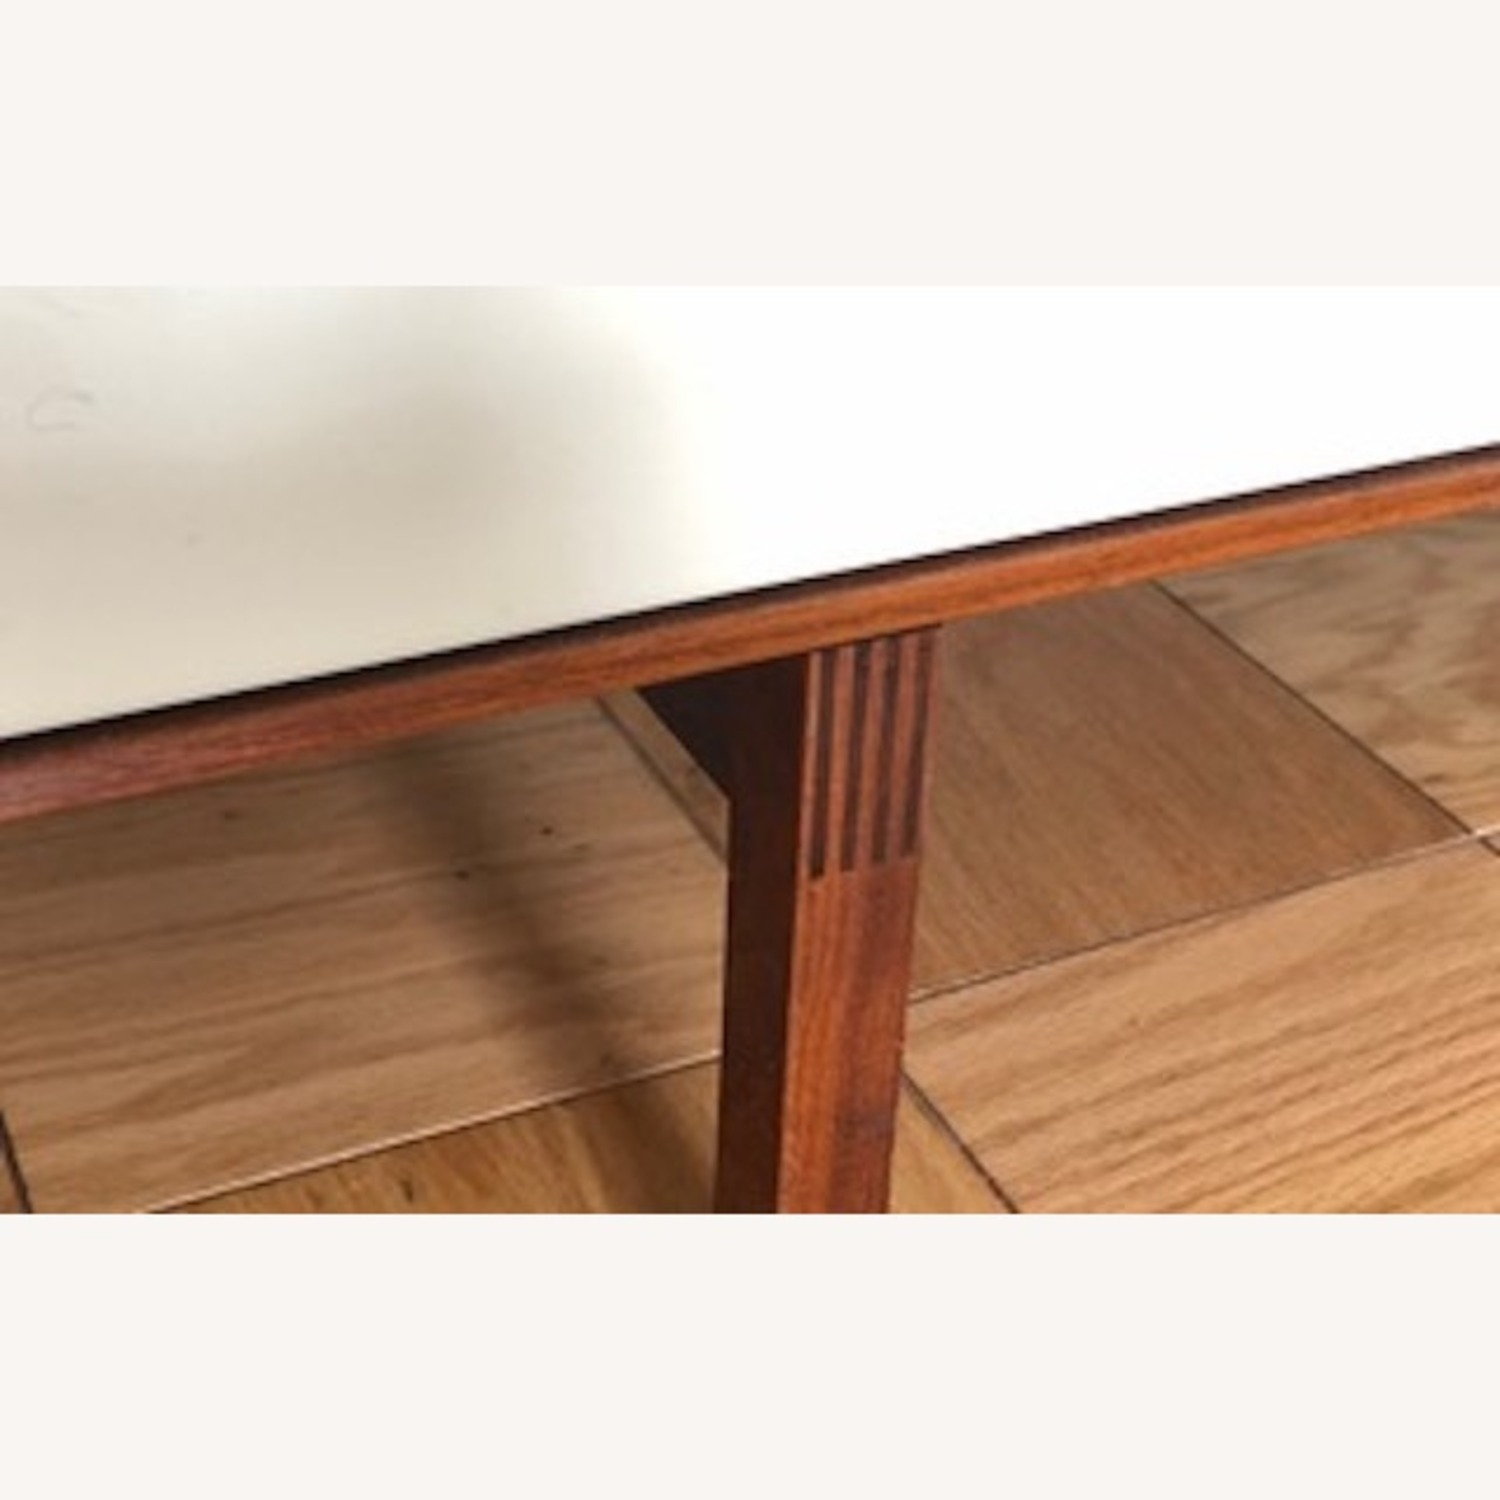 Vintage Florence Knoll Mid-Century Credenza - image-2